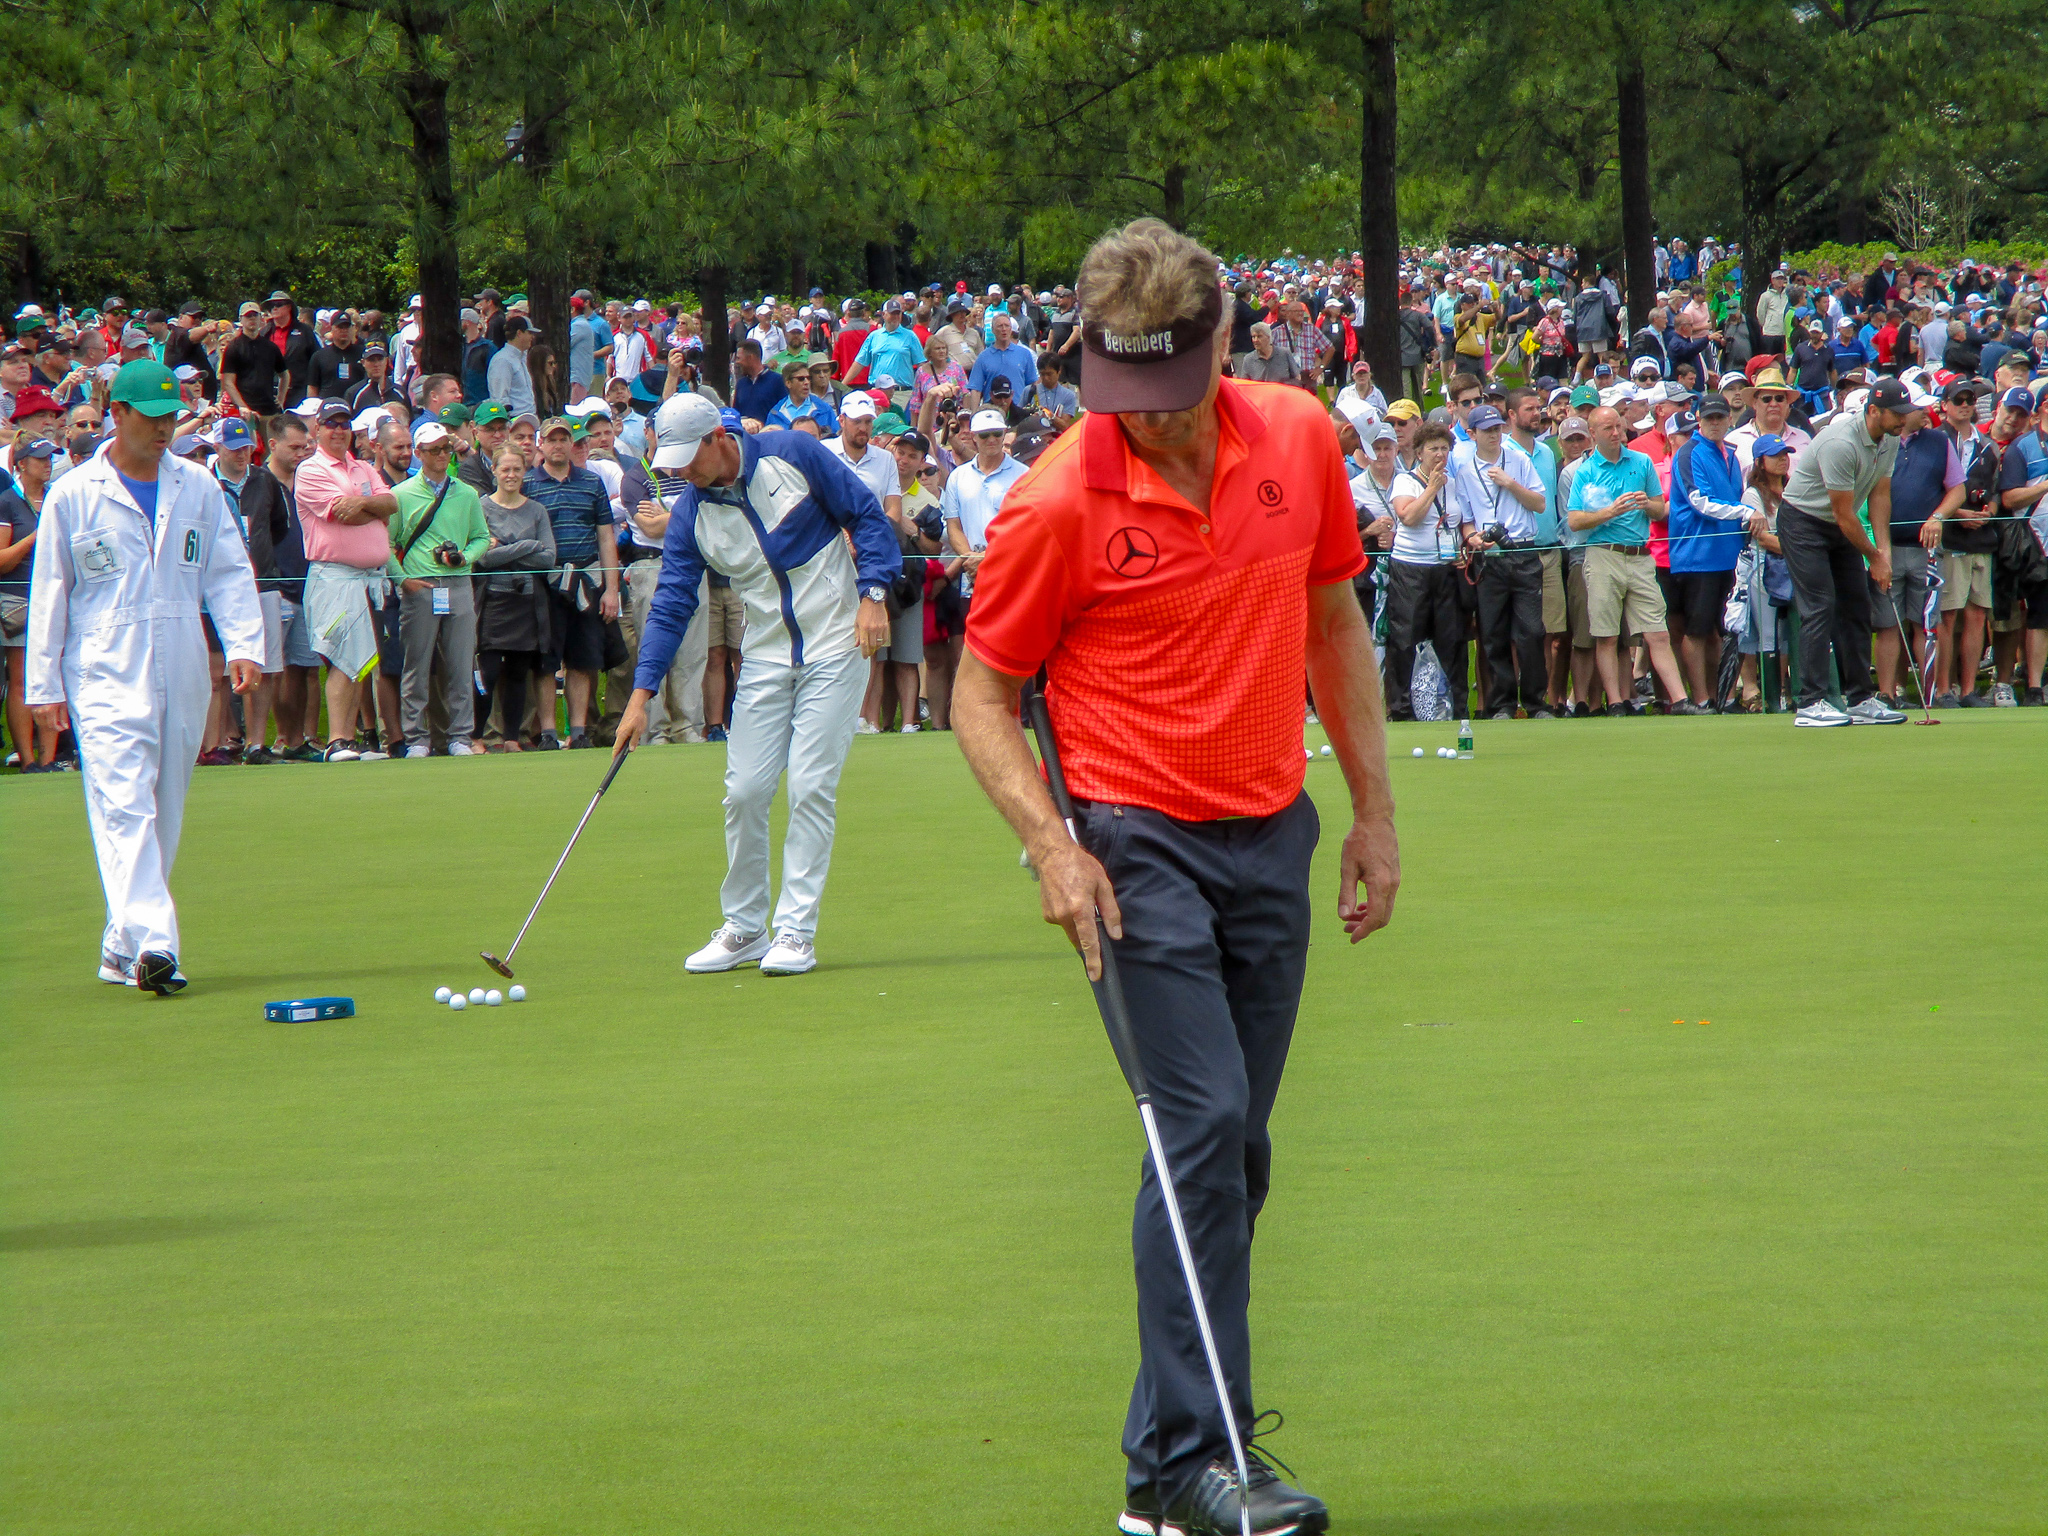 Bernhard Langer, Rory McIlroy, Jason Day auf dem Putting-Grün im Augusta National Golf Club 2019